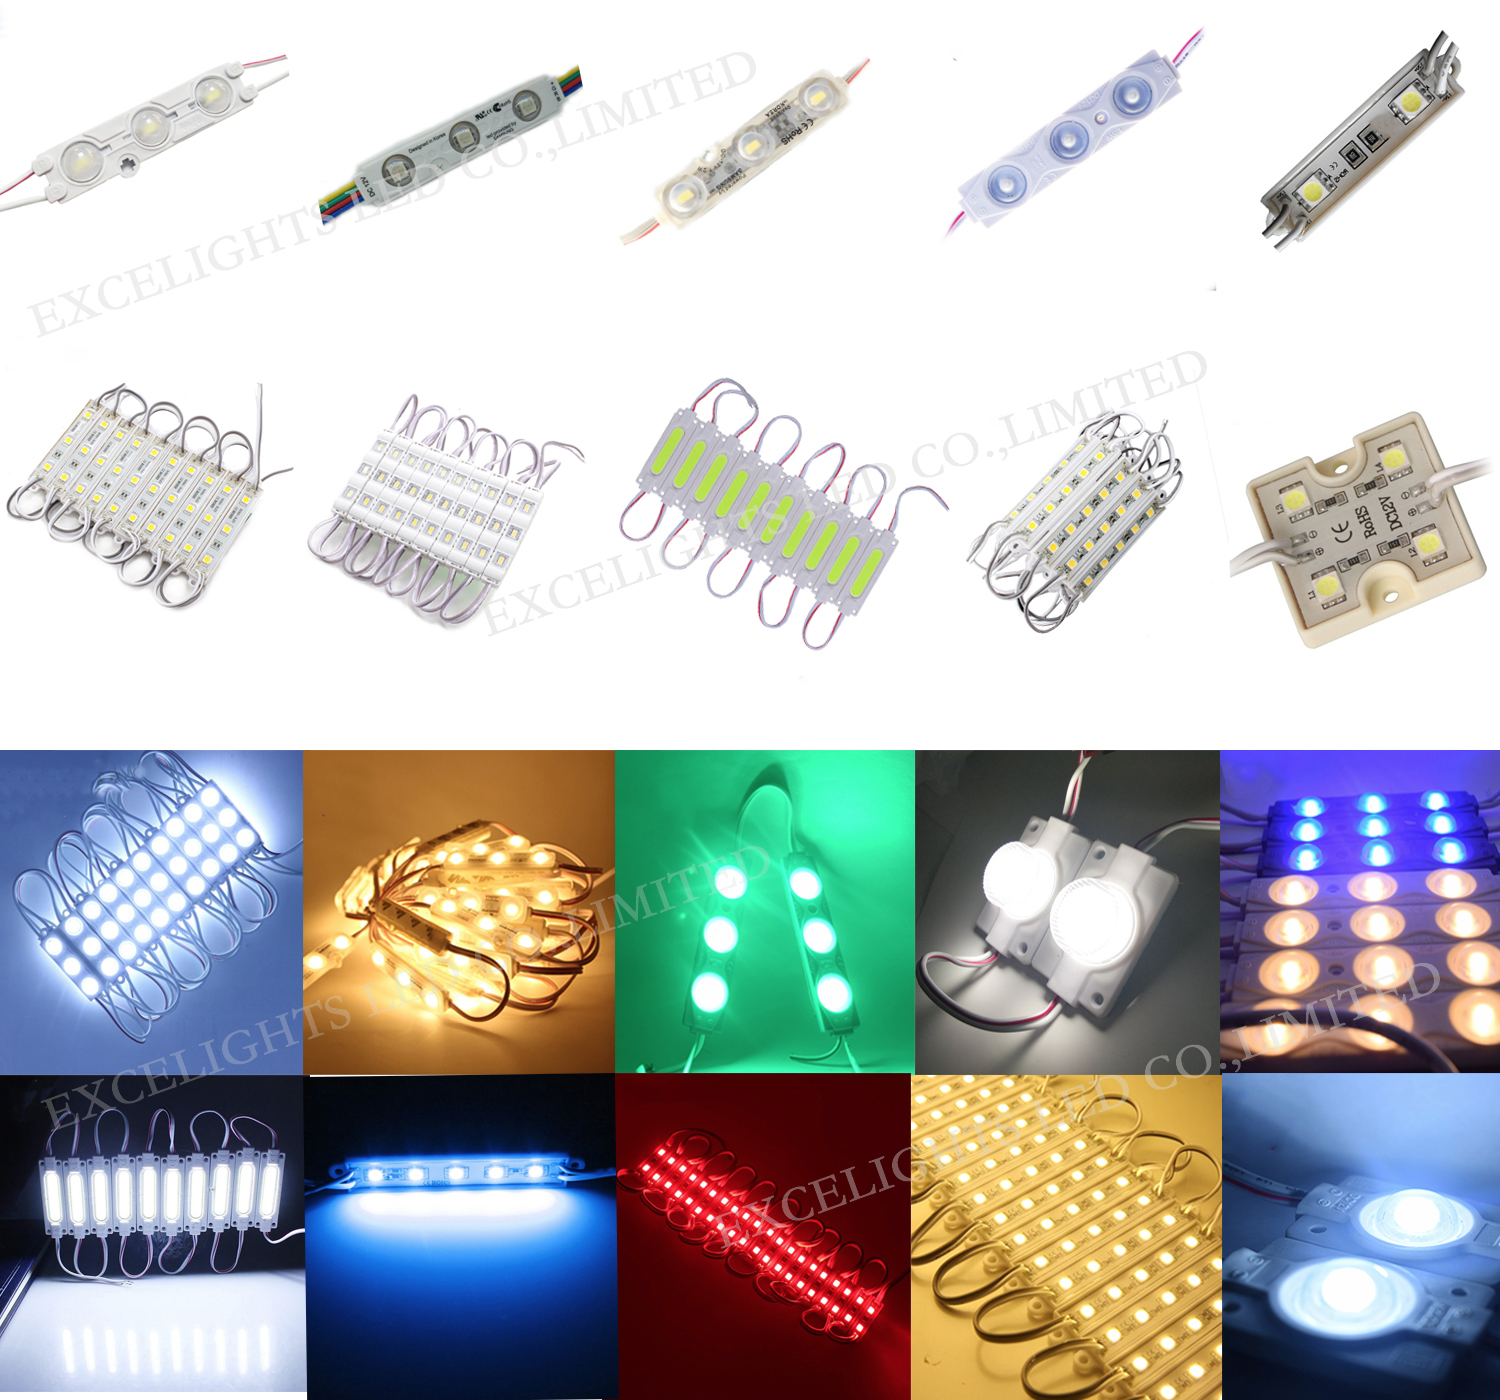 LED China Supplier 3 led module Epoxy 1.2W Waterproof 12V DC CE RoHS Approval SMD Korea Samsung LED Module 5730